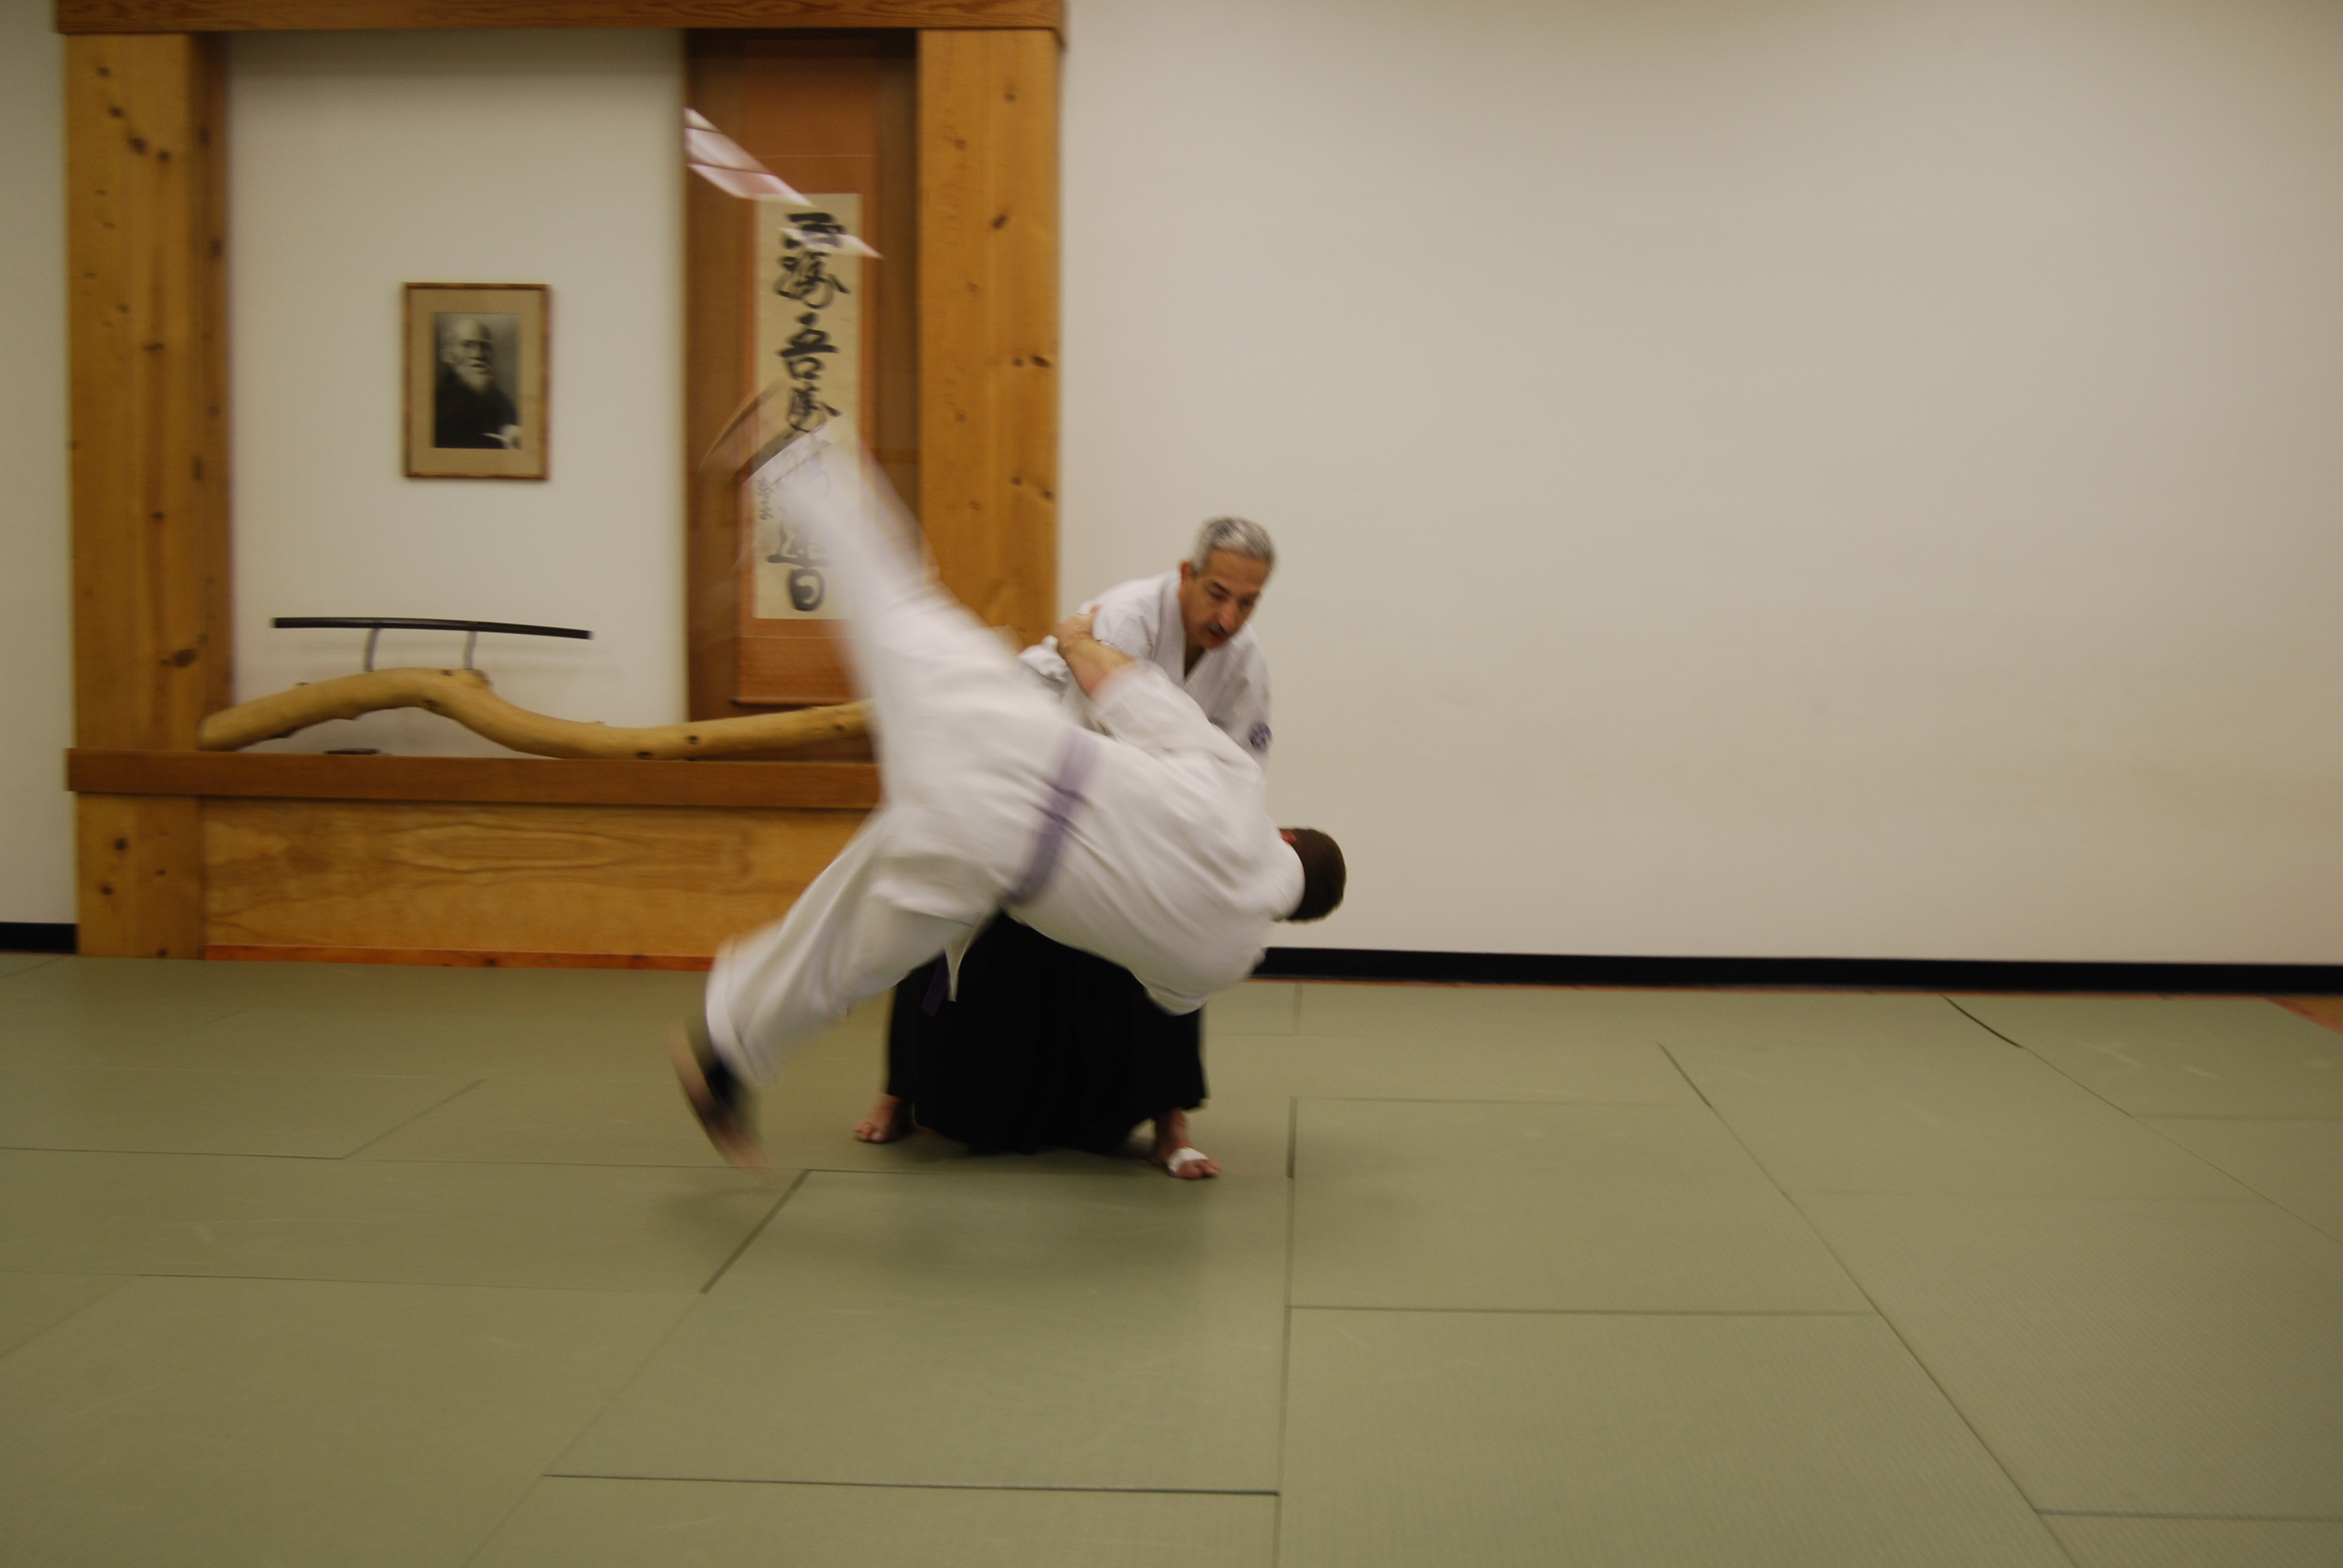 Proper knowledge of ukemi can minimize risk of injury on the mat when Aikido techniques are applied.